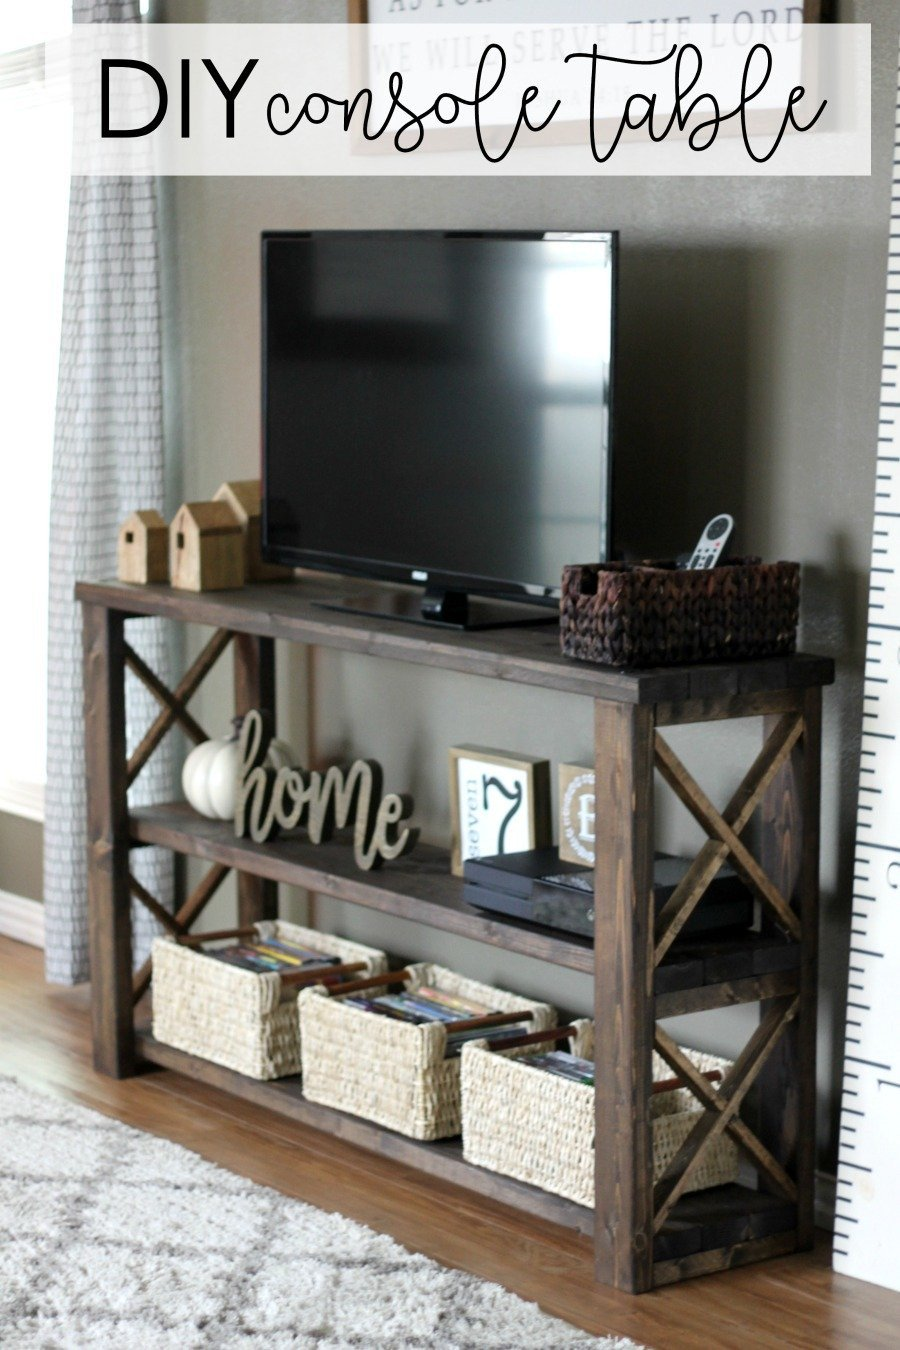 Farmhouse Tv Stand Design Ideas and Decor New How to Build A Diy Console Table for $50 or Less